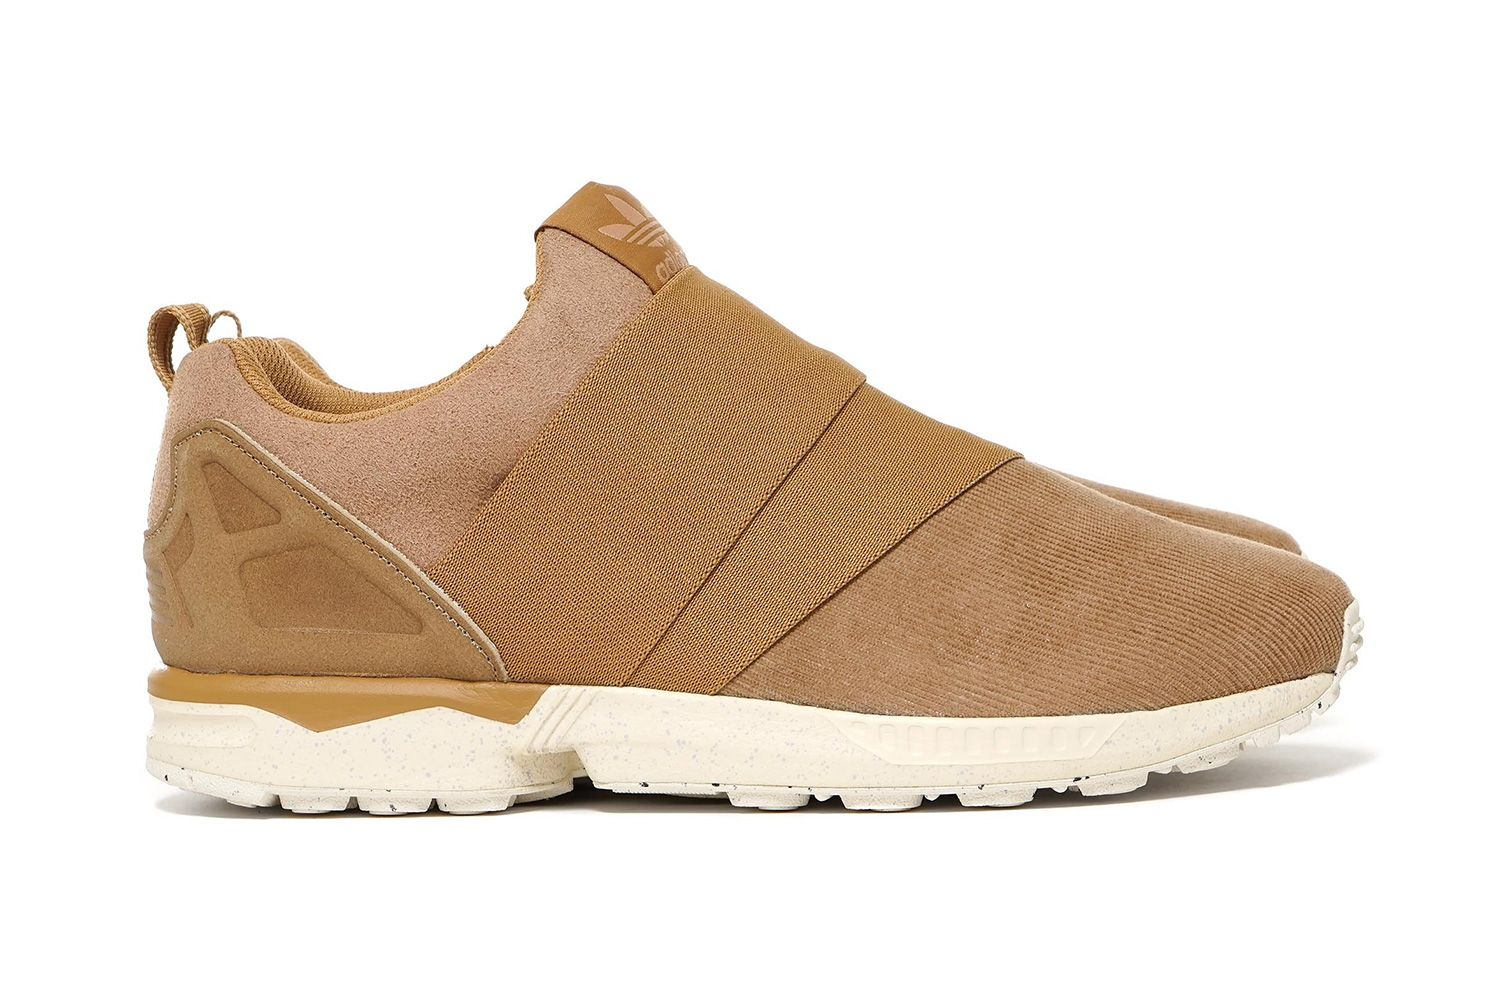 UNITED ARROWS & SONS Join adidas Originals for ZX Flux Slip On